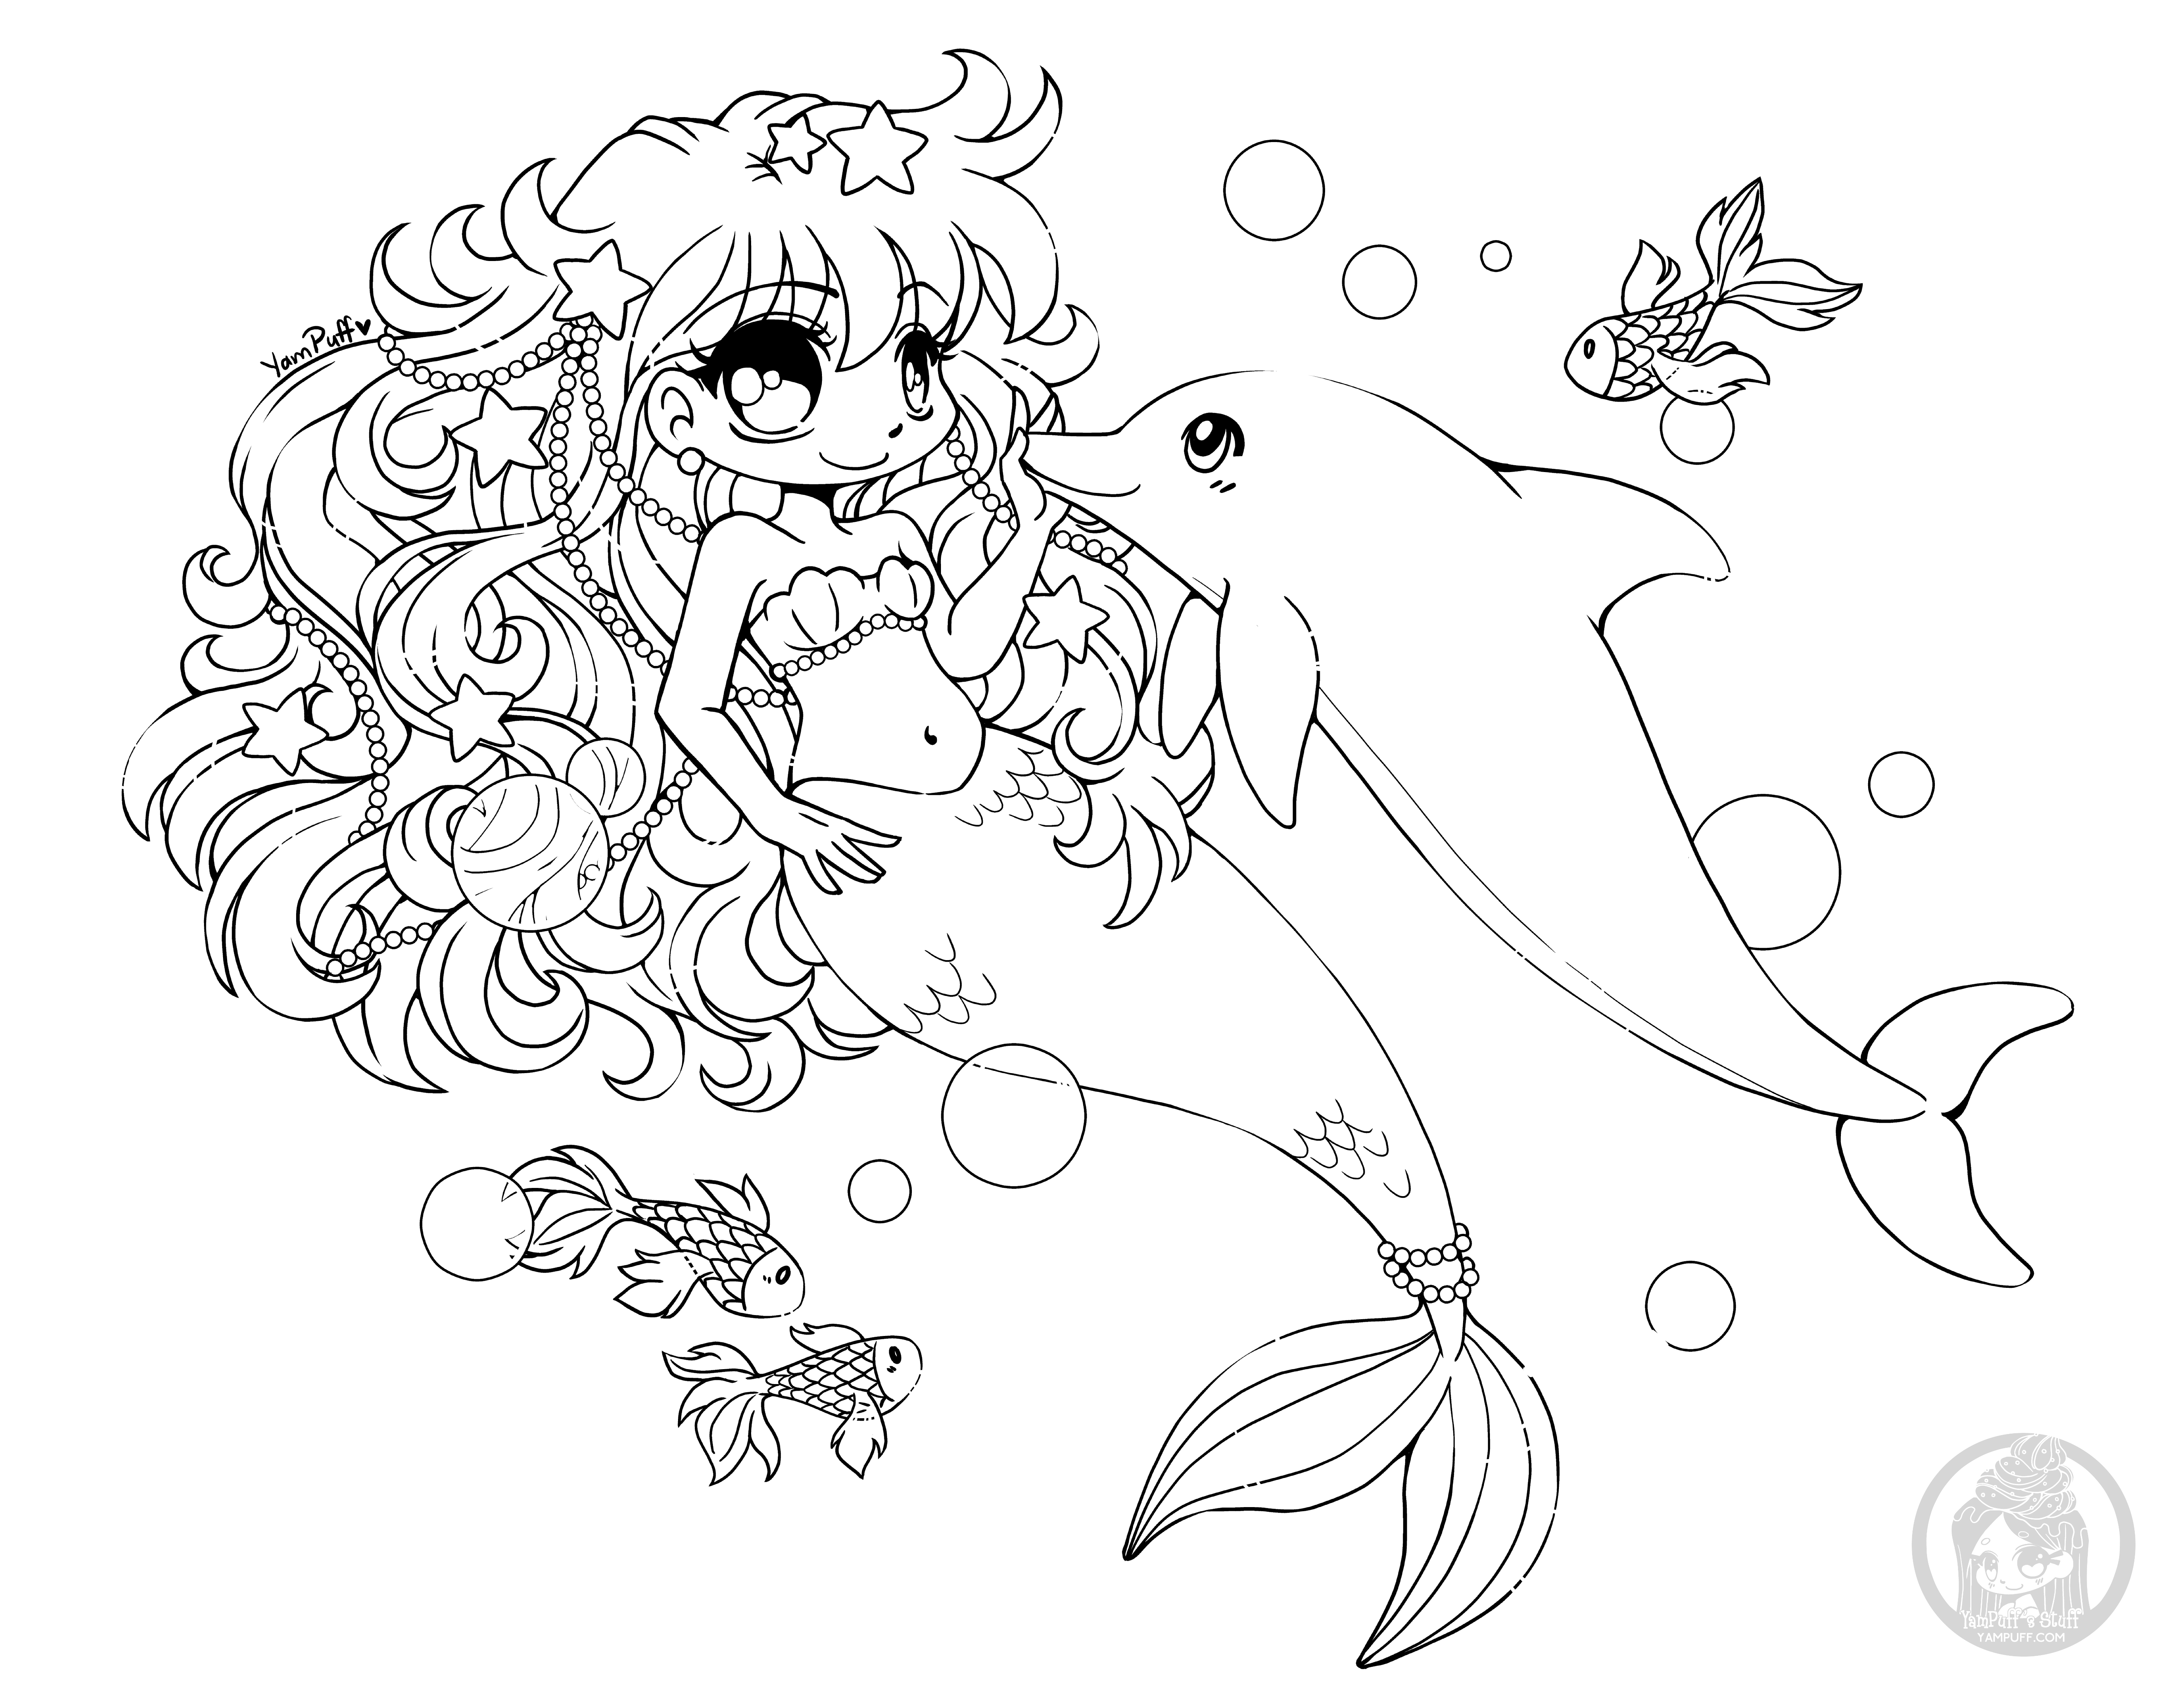 Under The Sea Open Lineart By Yampuff D91gj90 Png 5856 4554 Chibi Coloring Pages Mermaid Coloring Pages Mermaid Coloring